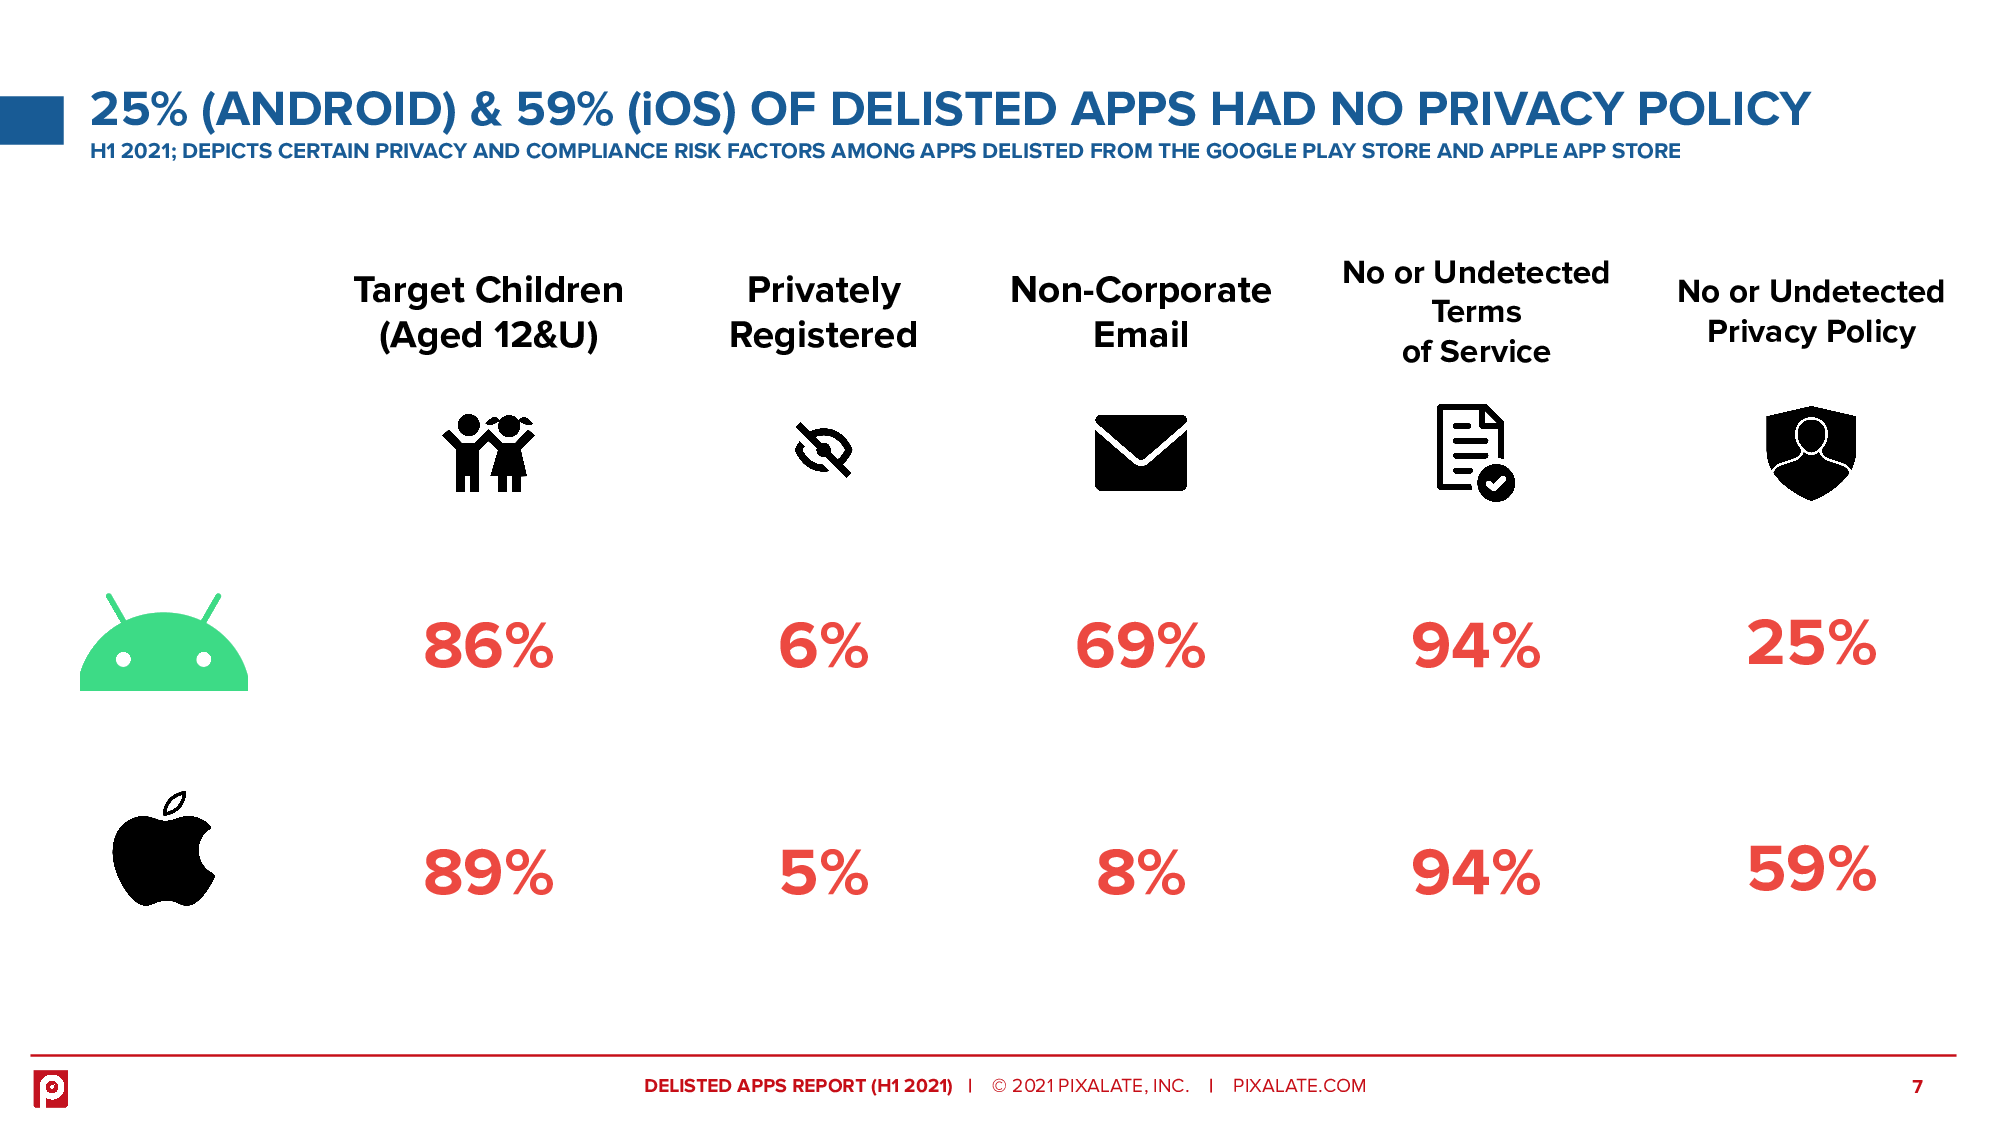 59% of delisted iOS apps and 25% of Android apps had no privacy policy